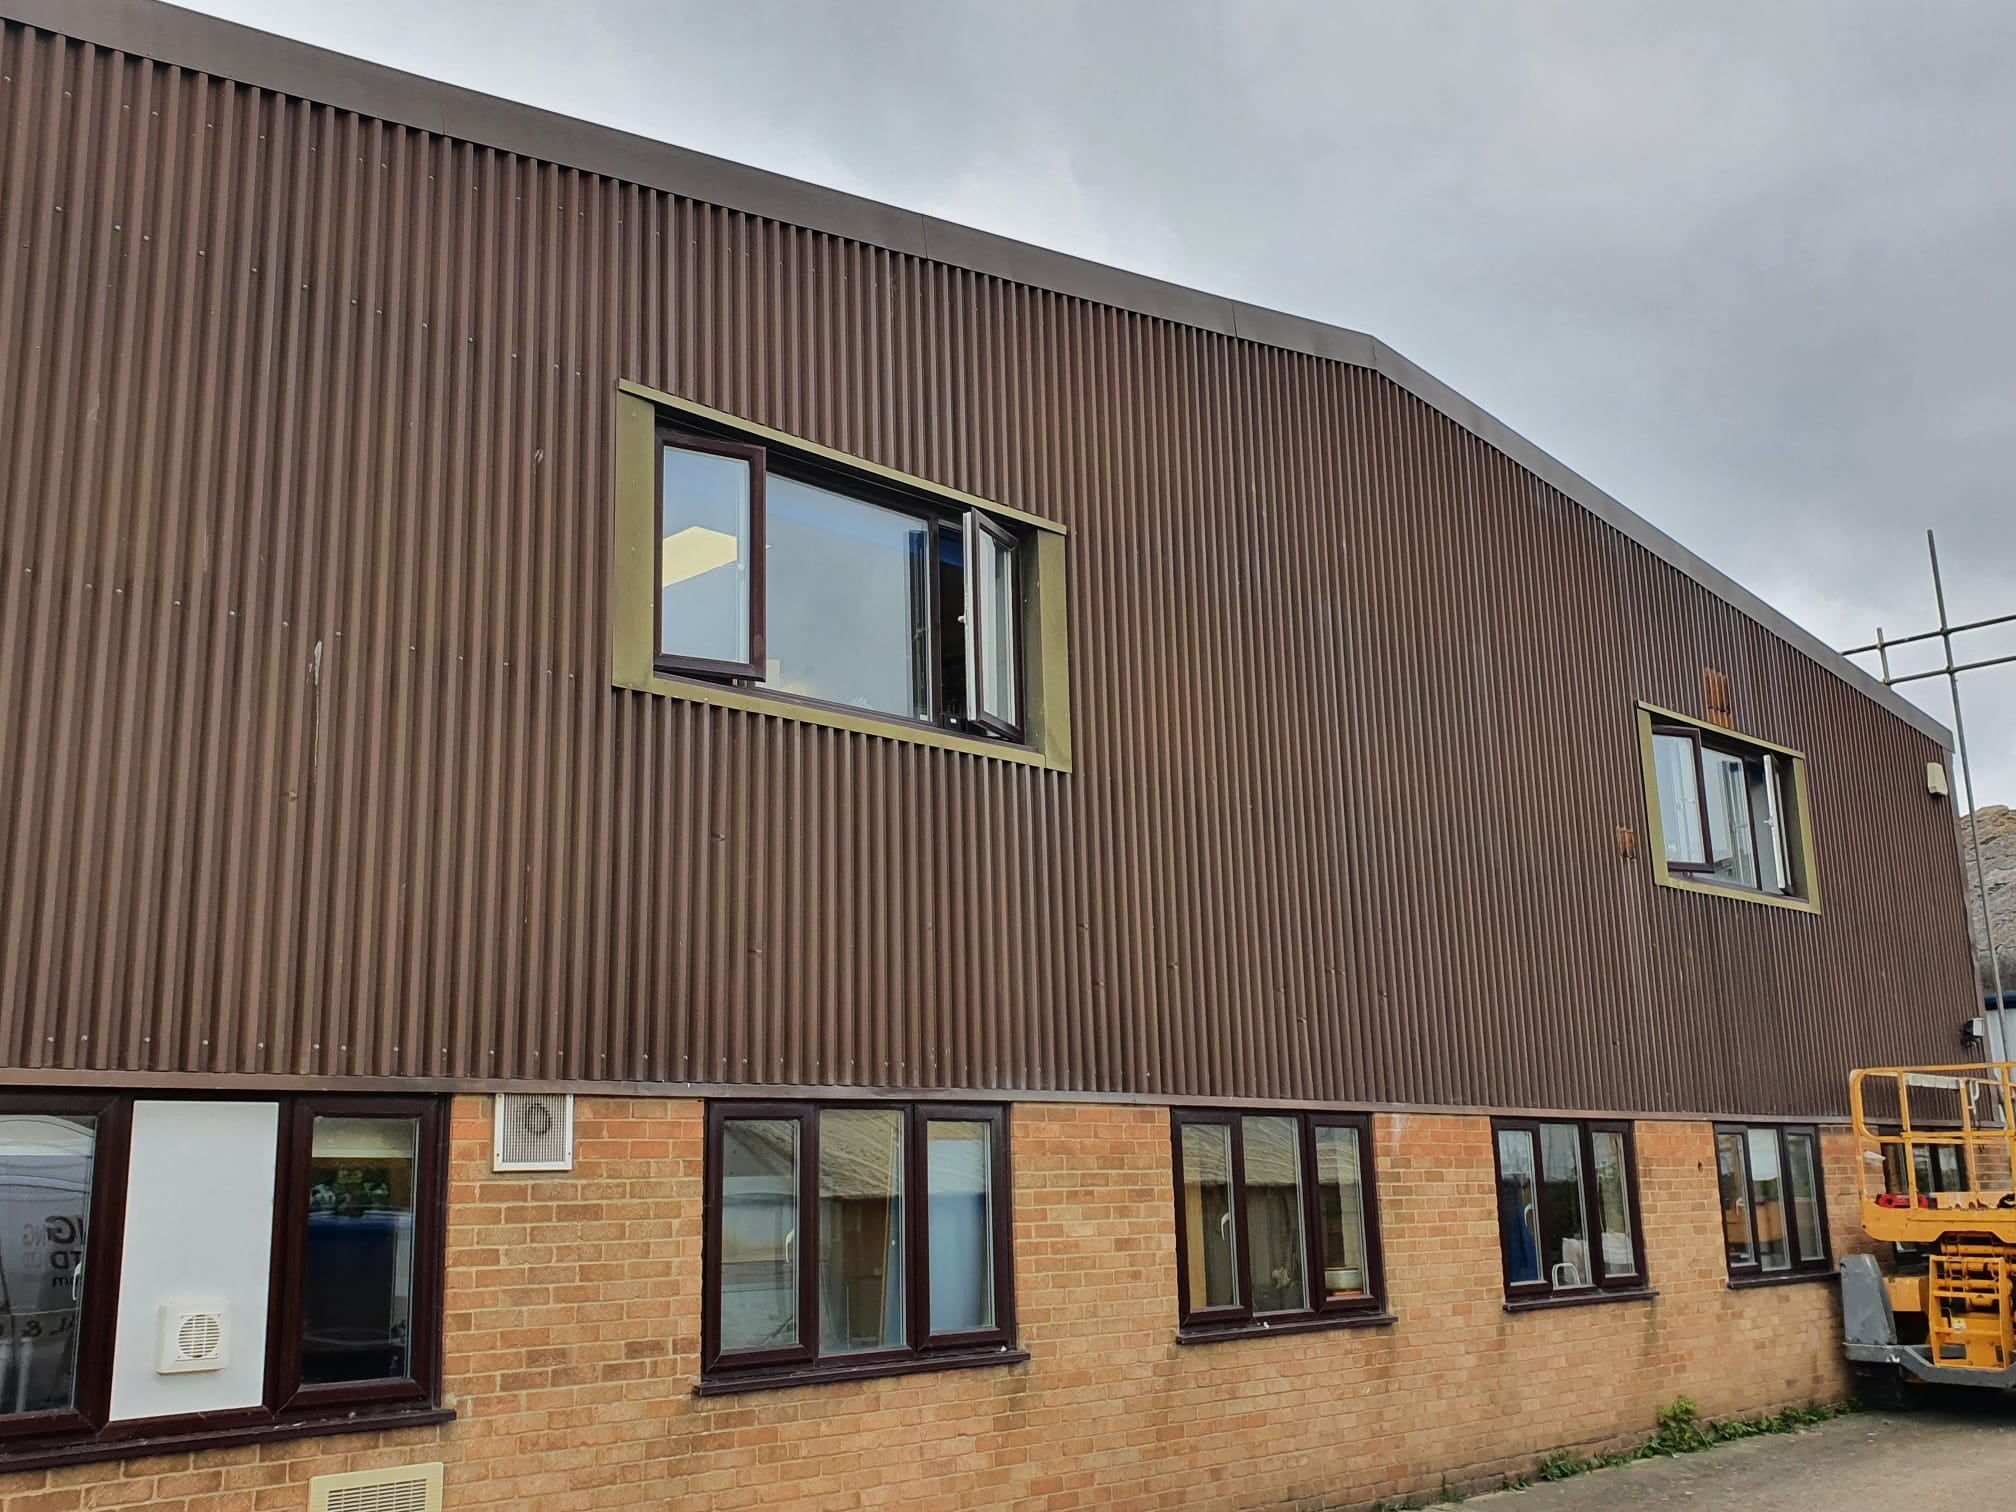 Cladding on a warehouse roof in Littlehampton West Sussex